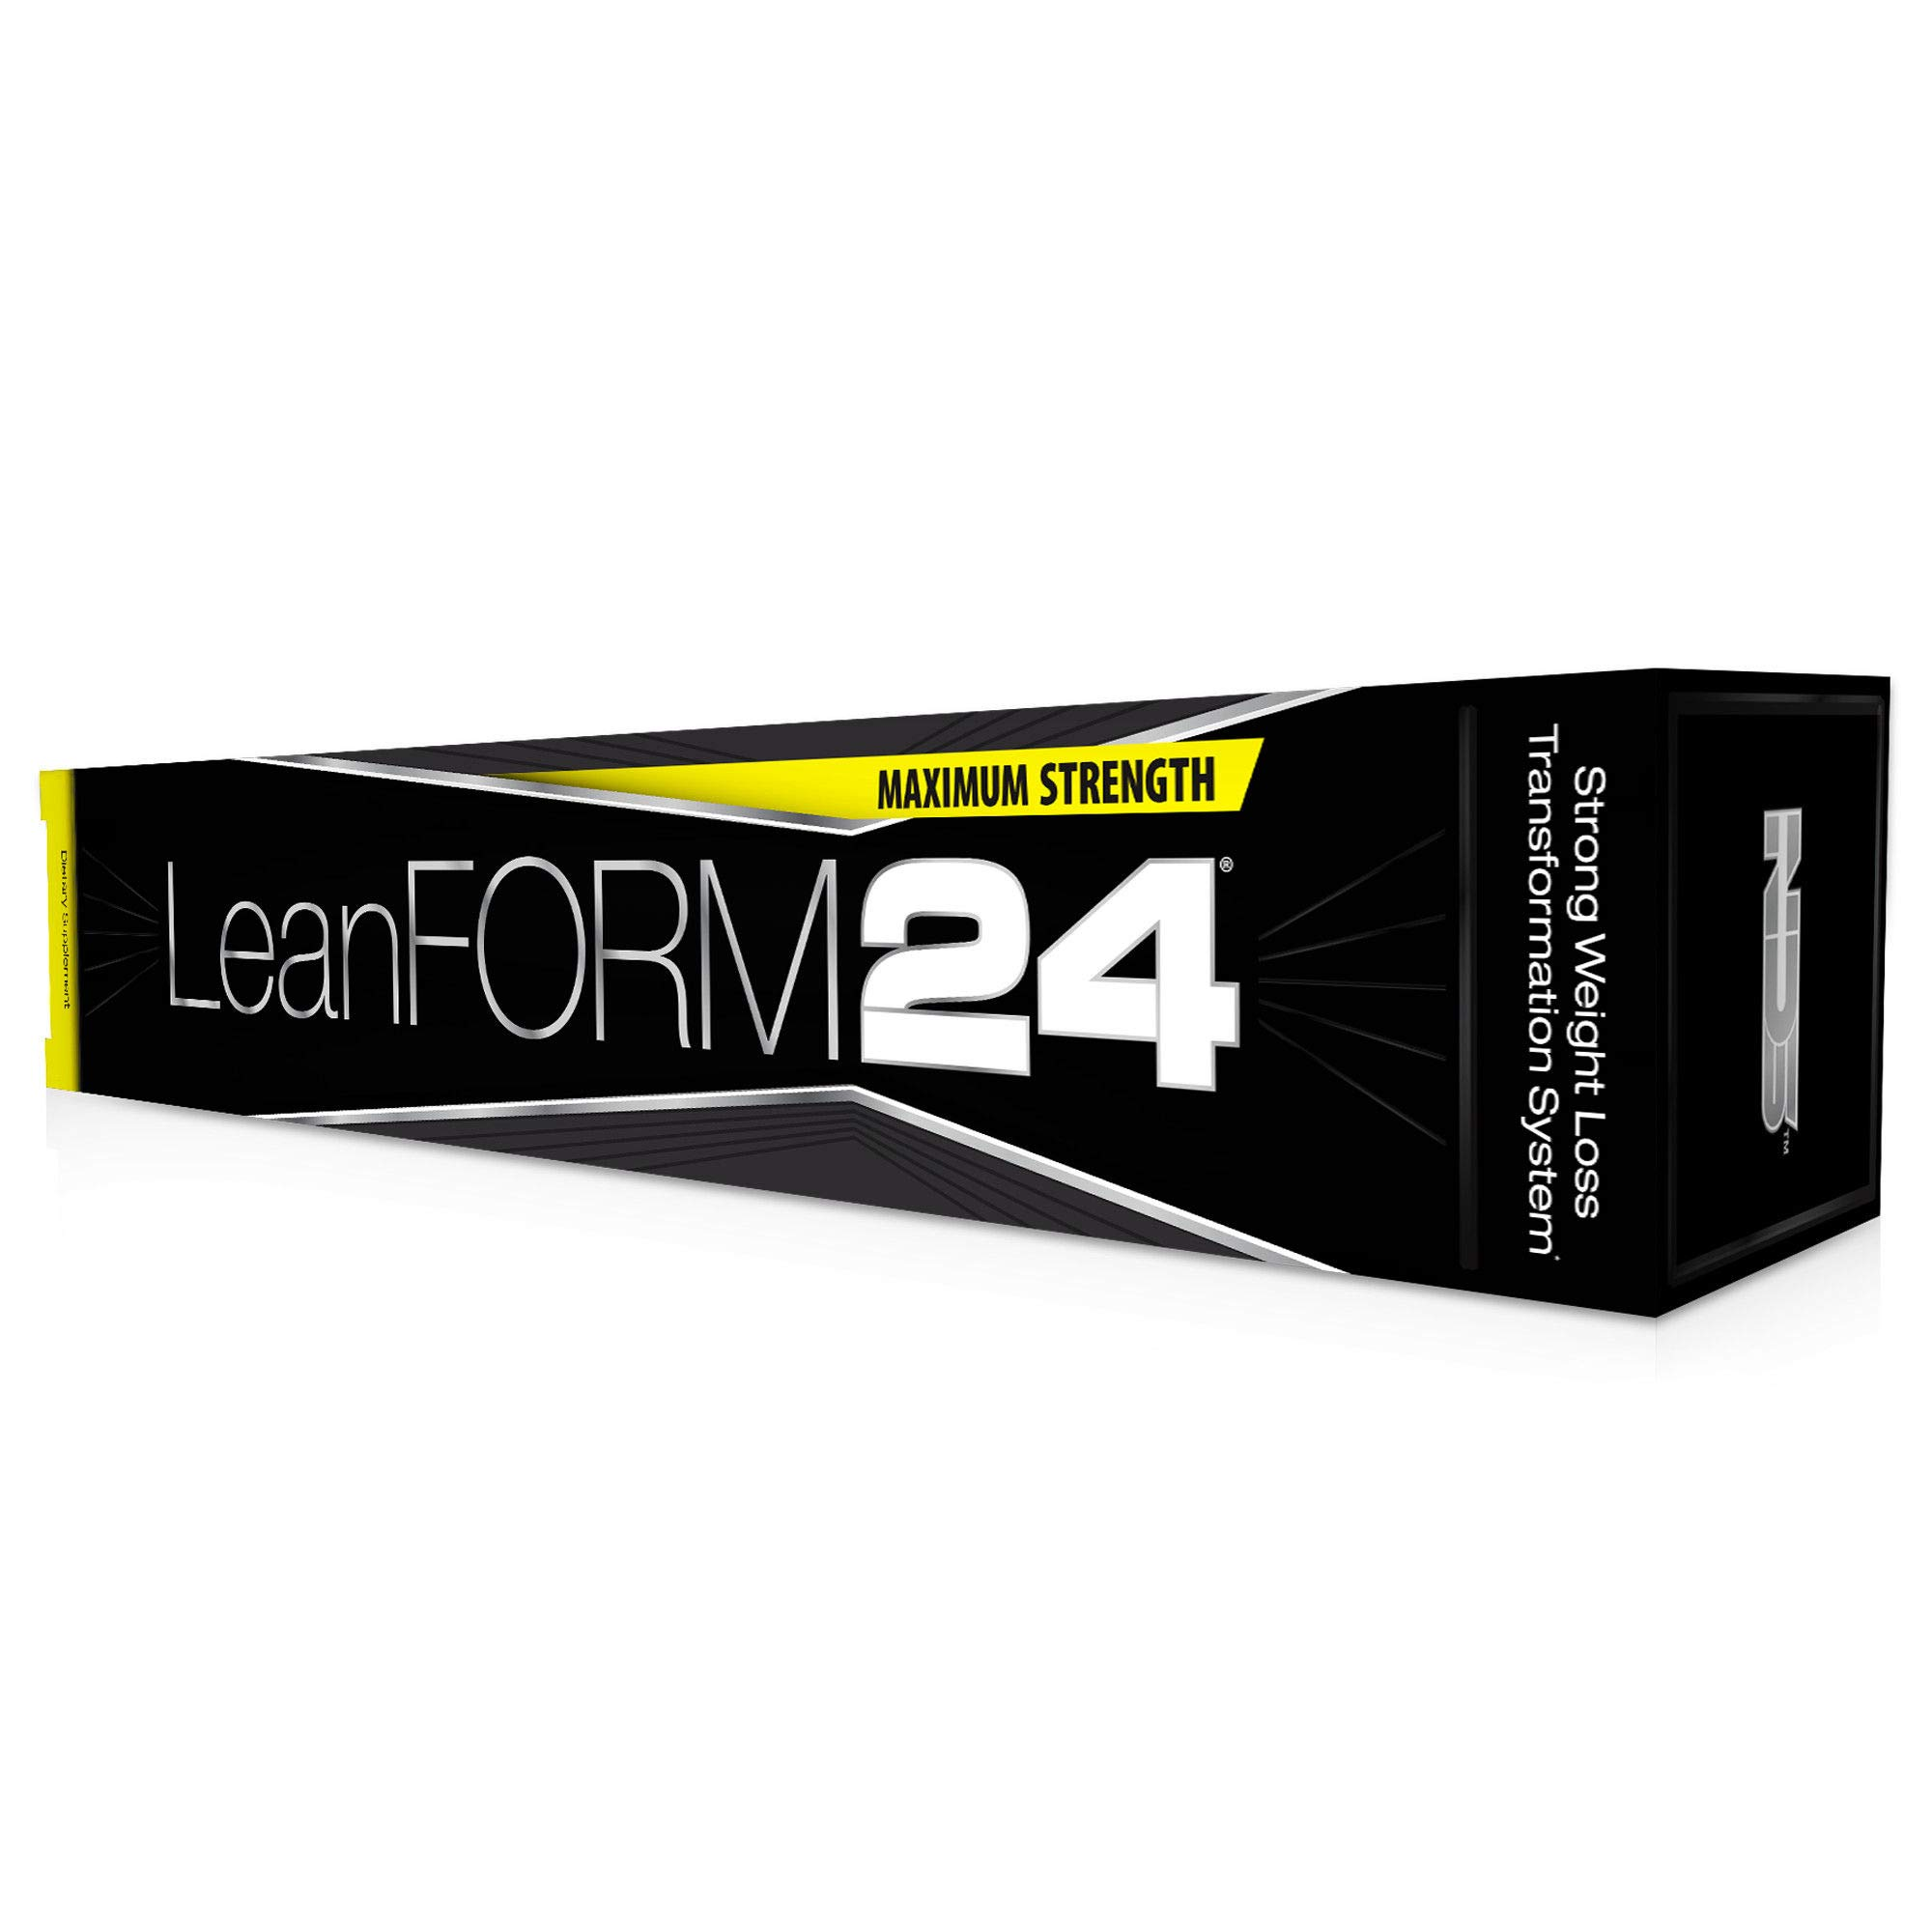 NDS Nutrition LeanForm24 - Weight Loss, Decrease Appetite, Energy Booster - Maximum Strength Diet Kit with L-Carnitine and CLA - LipoRush XT 60 Capsules - Censor 180 Softgels - Slim-Tox 90 Capsules